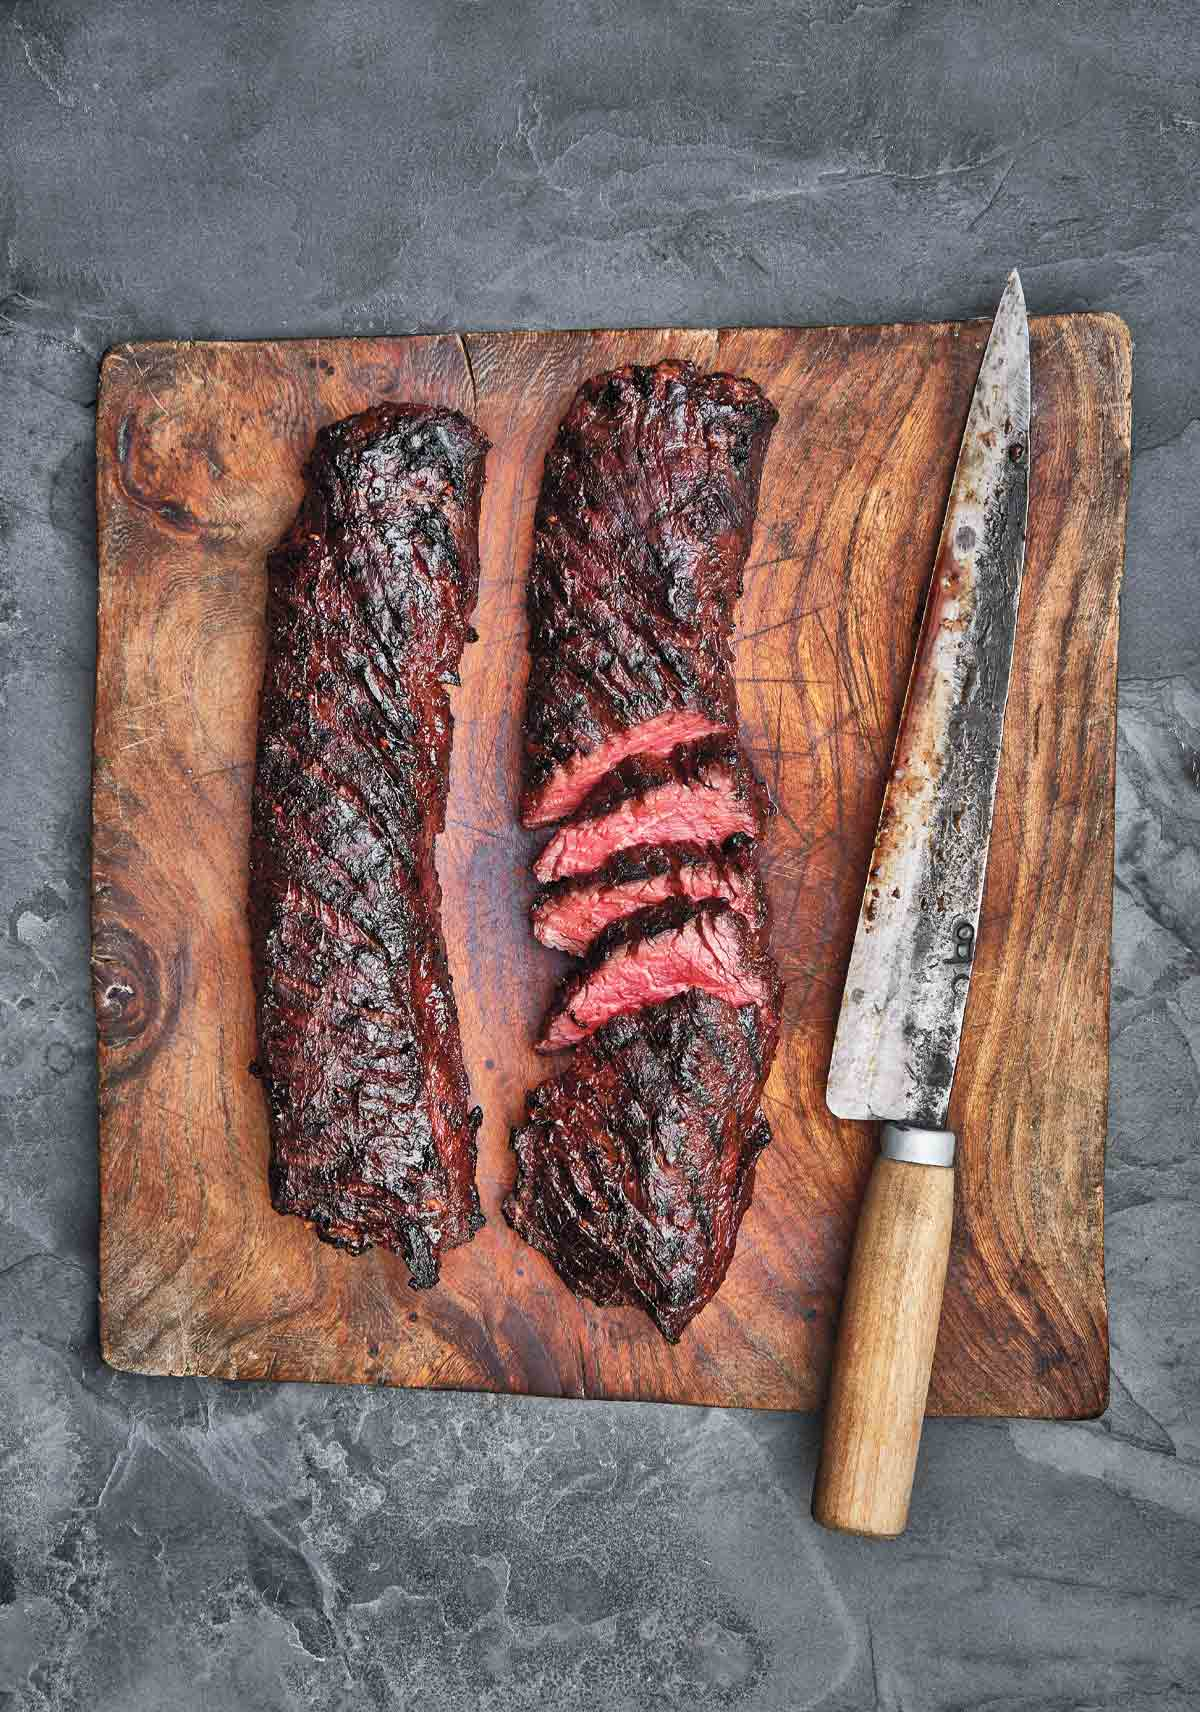 Two pieces of Korean style steak on a cutting board with a knife.